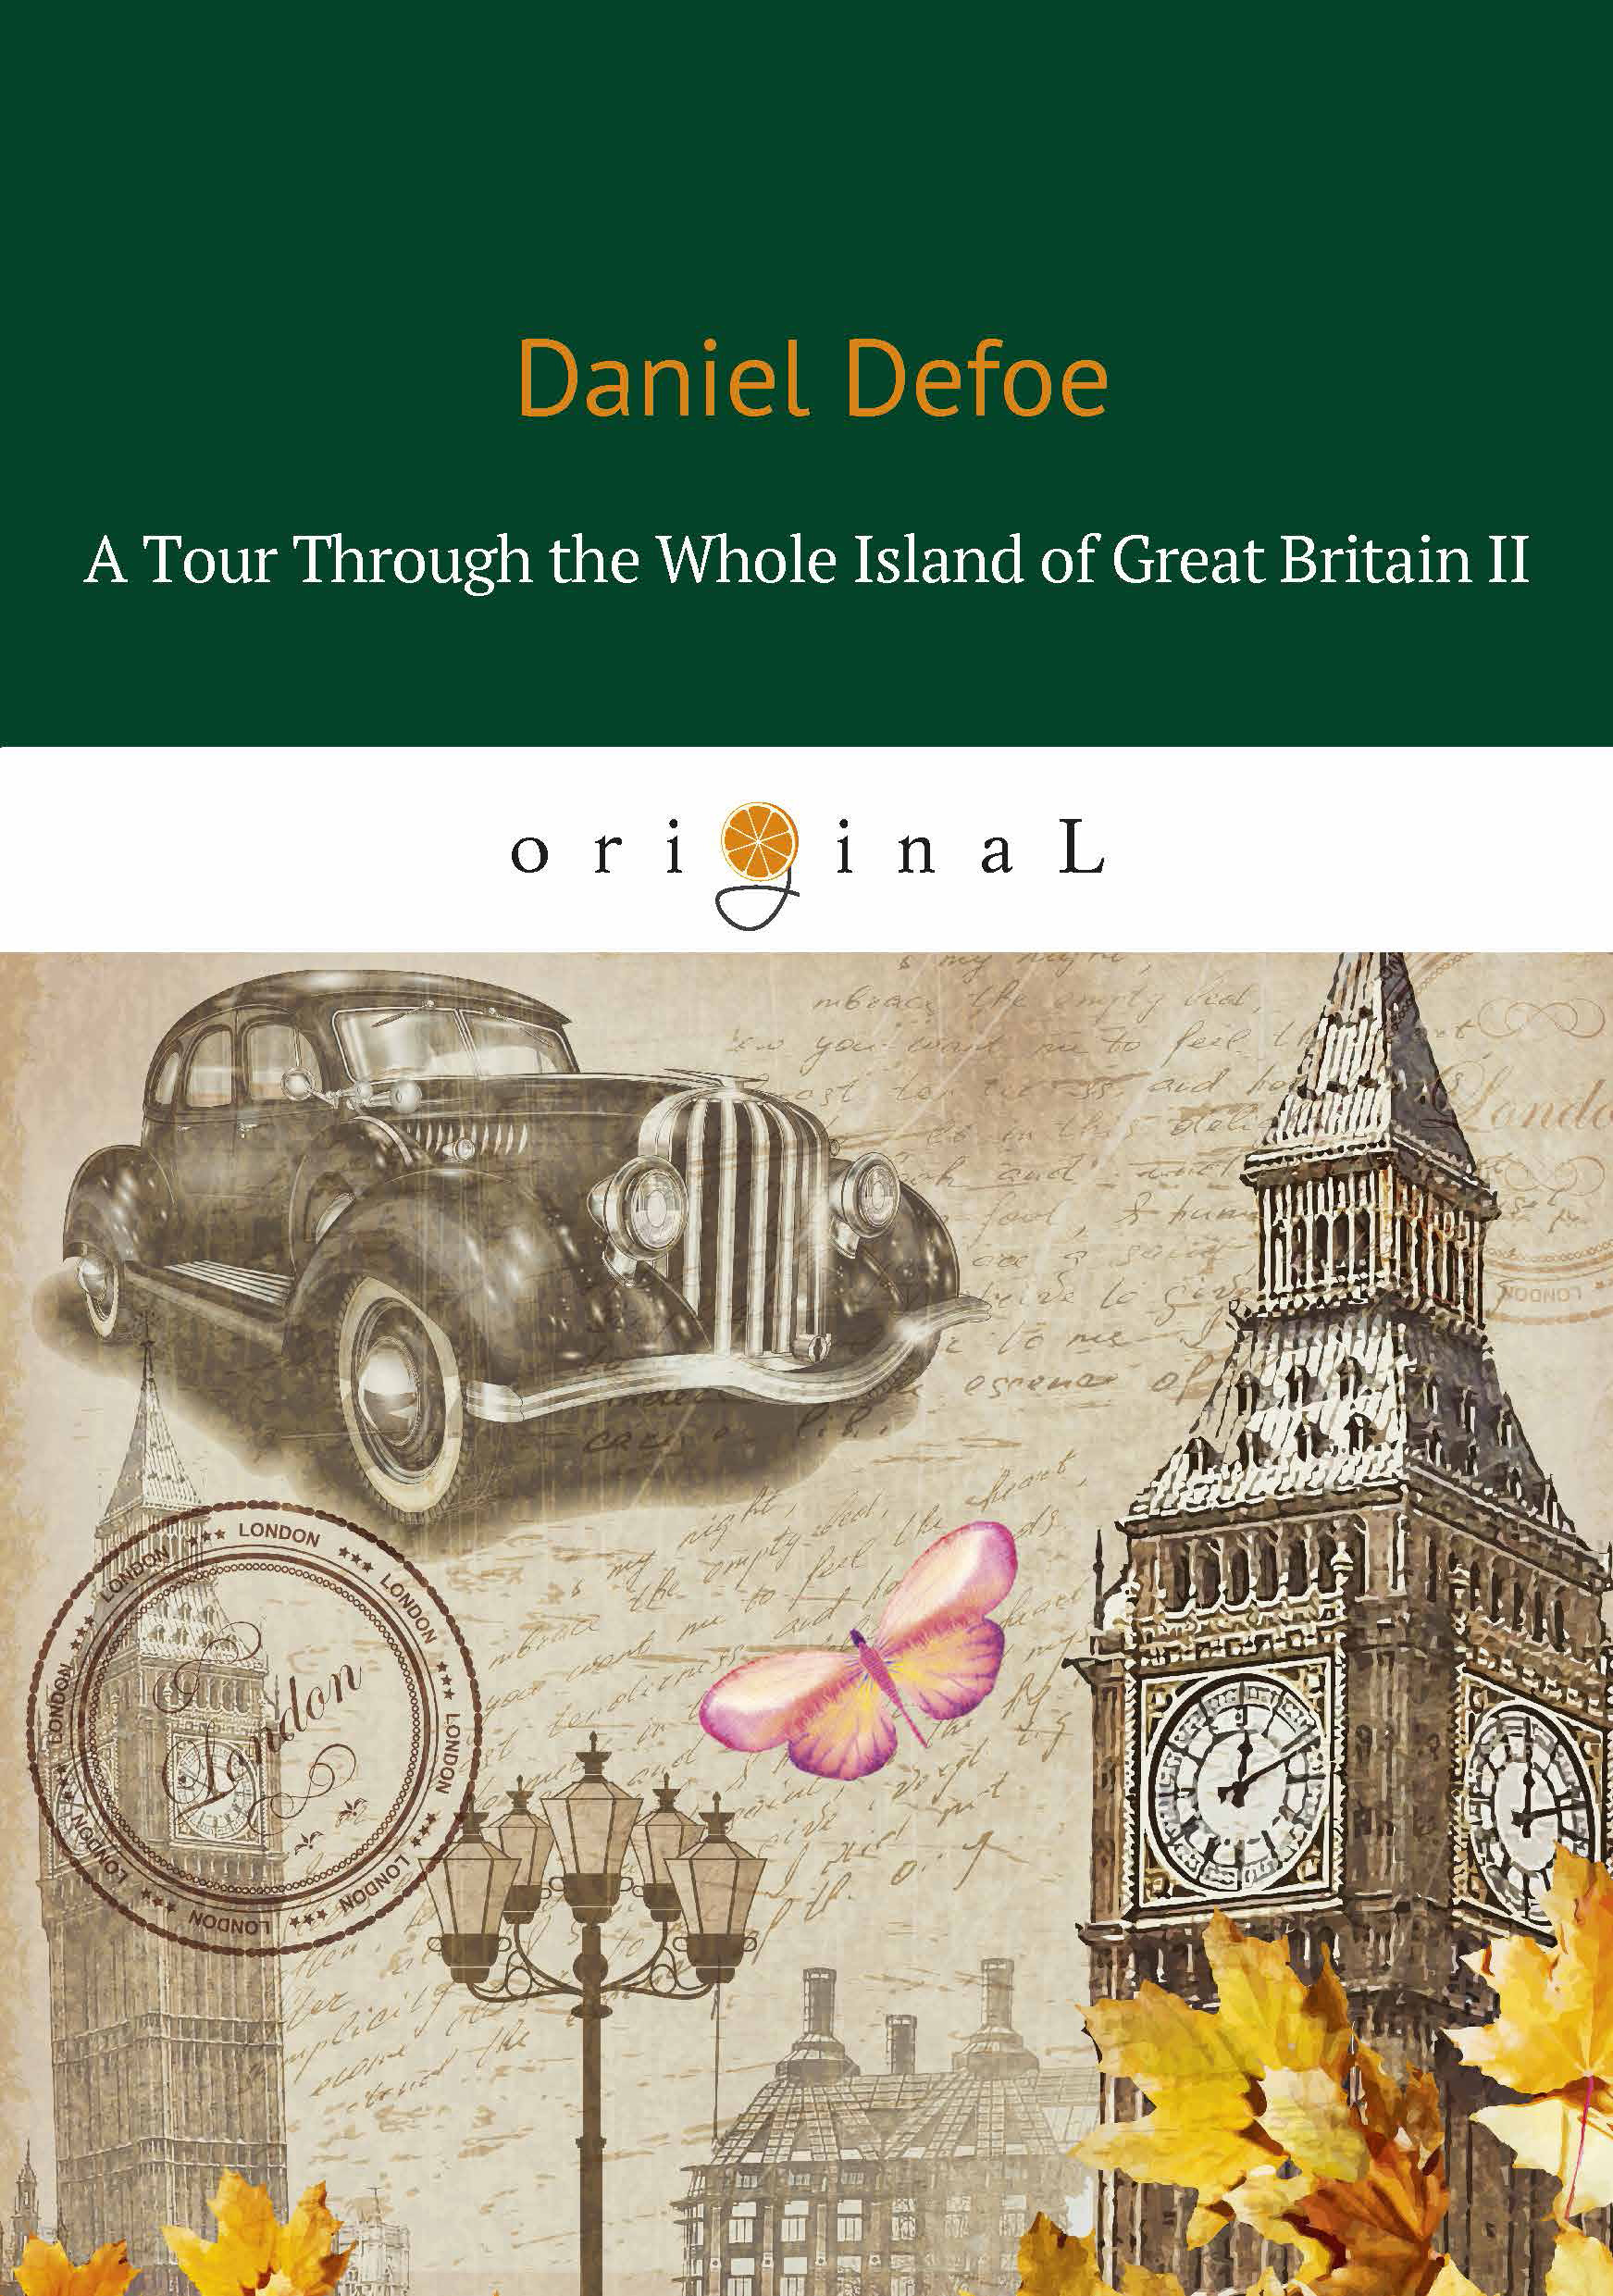 Даниэль Дефо A Tour Through the Whole Island of Great Britain II defoe d a tour through the whole island of great britain 1 тур через великобританию 1 т 6 на англ яз